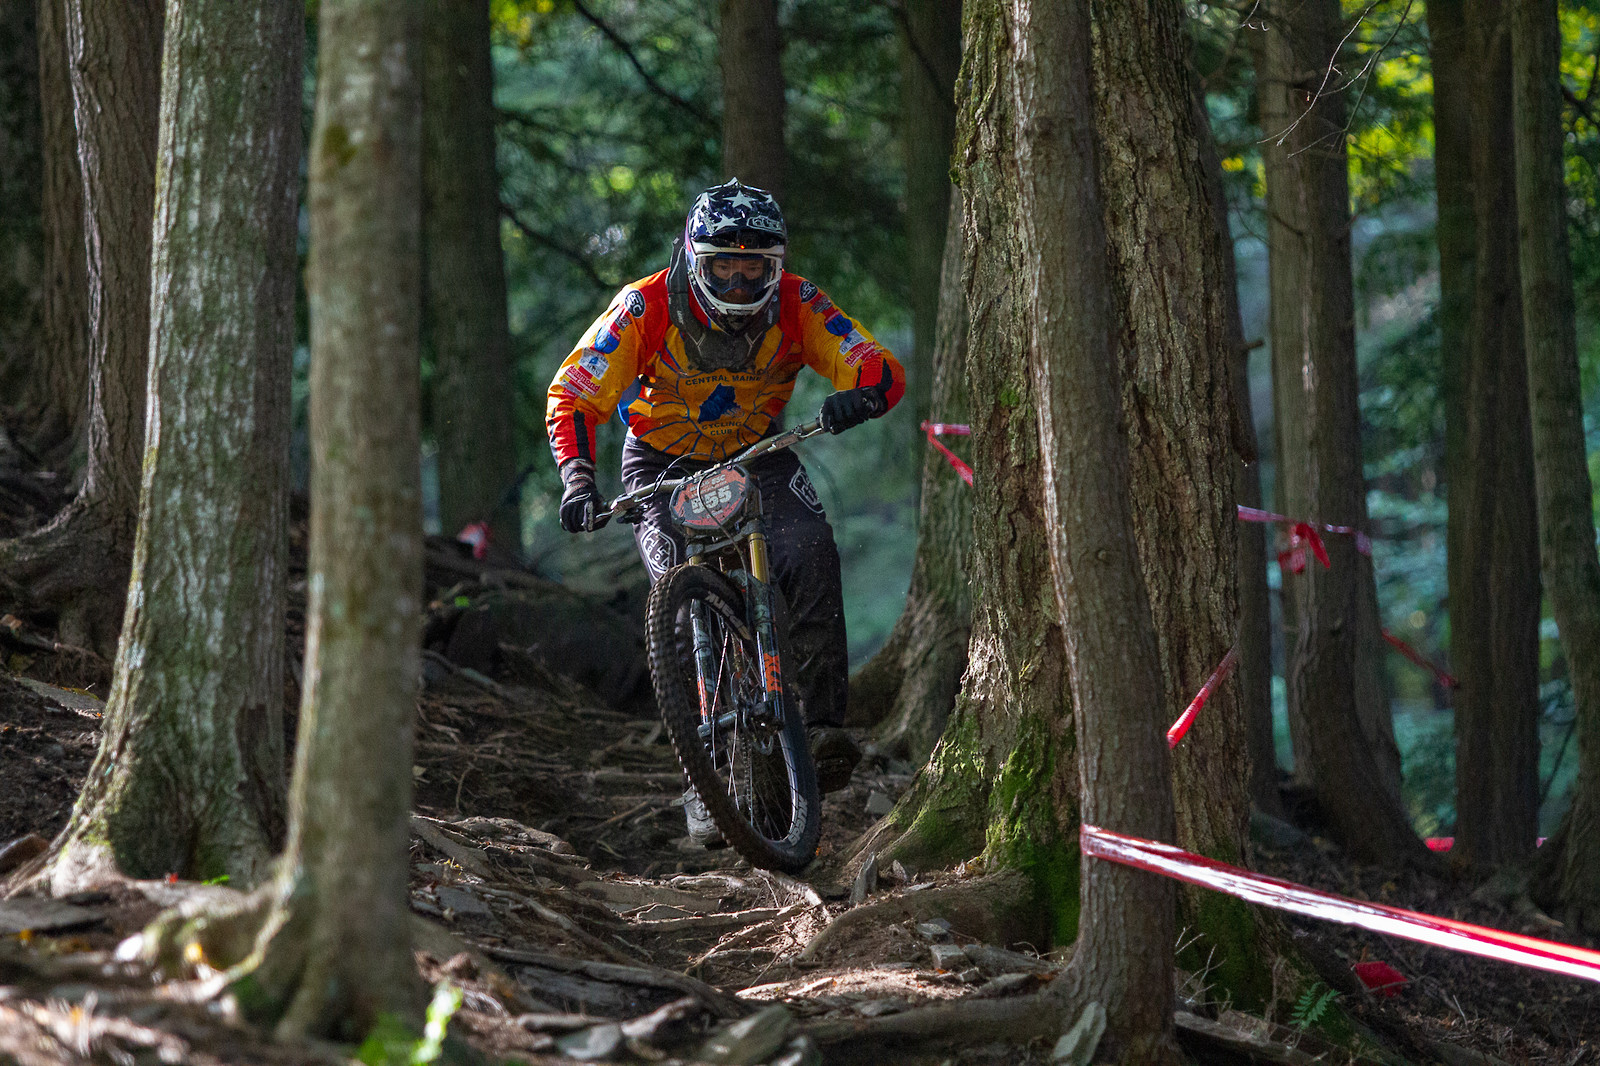 Mark Schnepel  - JackRice - Mountain Biking Pictures - Vital MTB